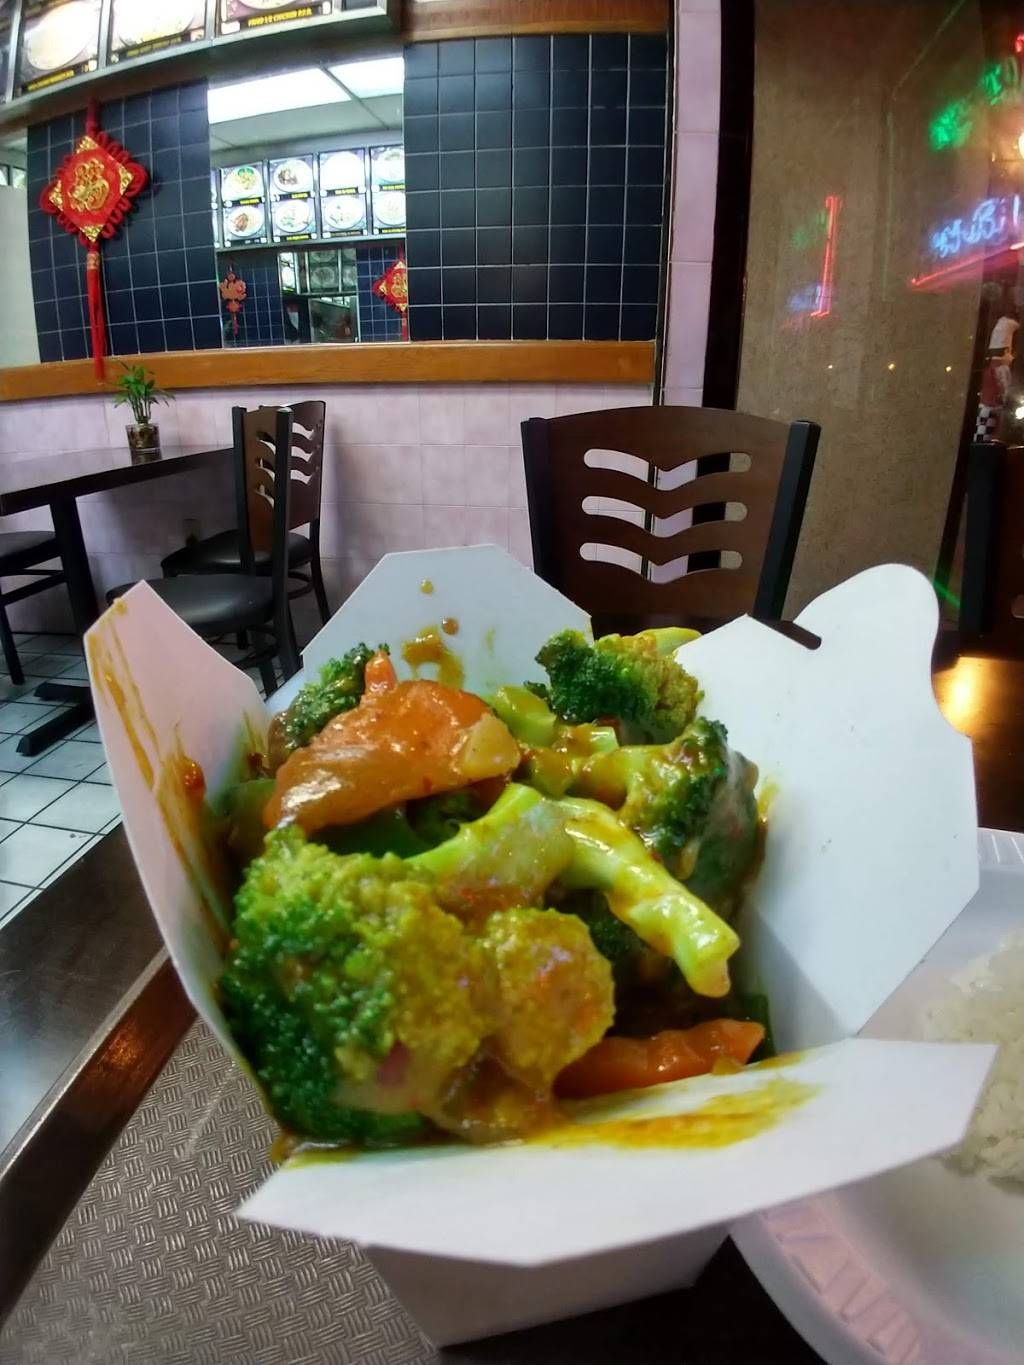 Daily Chinese Restaurant | restaurant | 4210 Park Ave, Weehawken, NJ 07086, USA | 2018652273 OR +1 201-865-2273